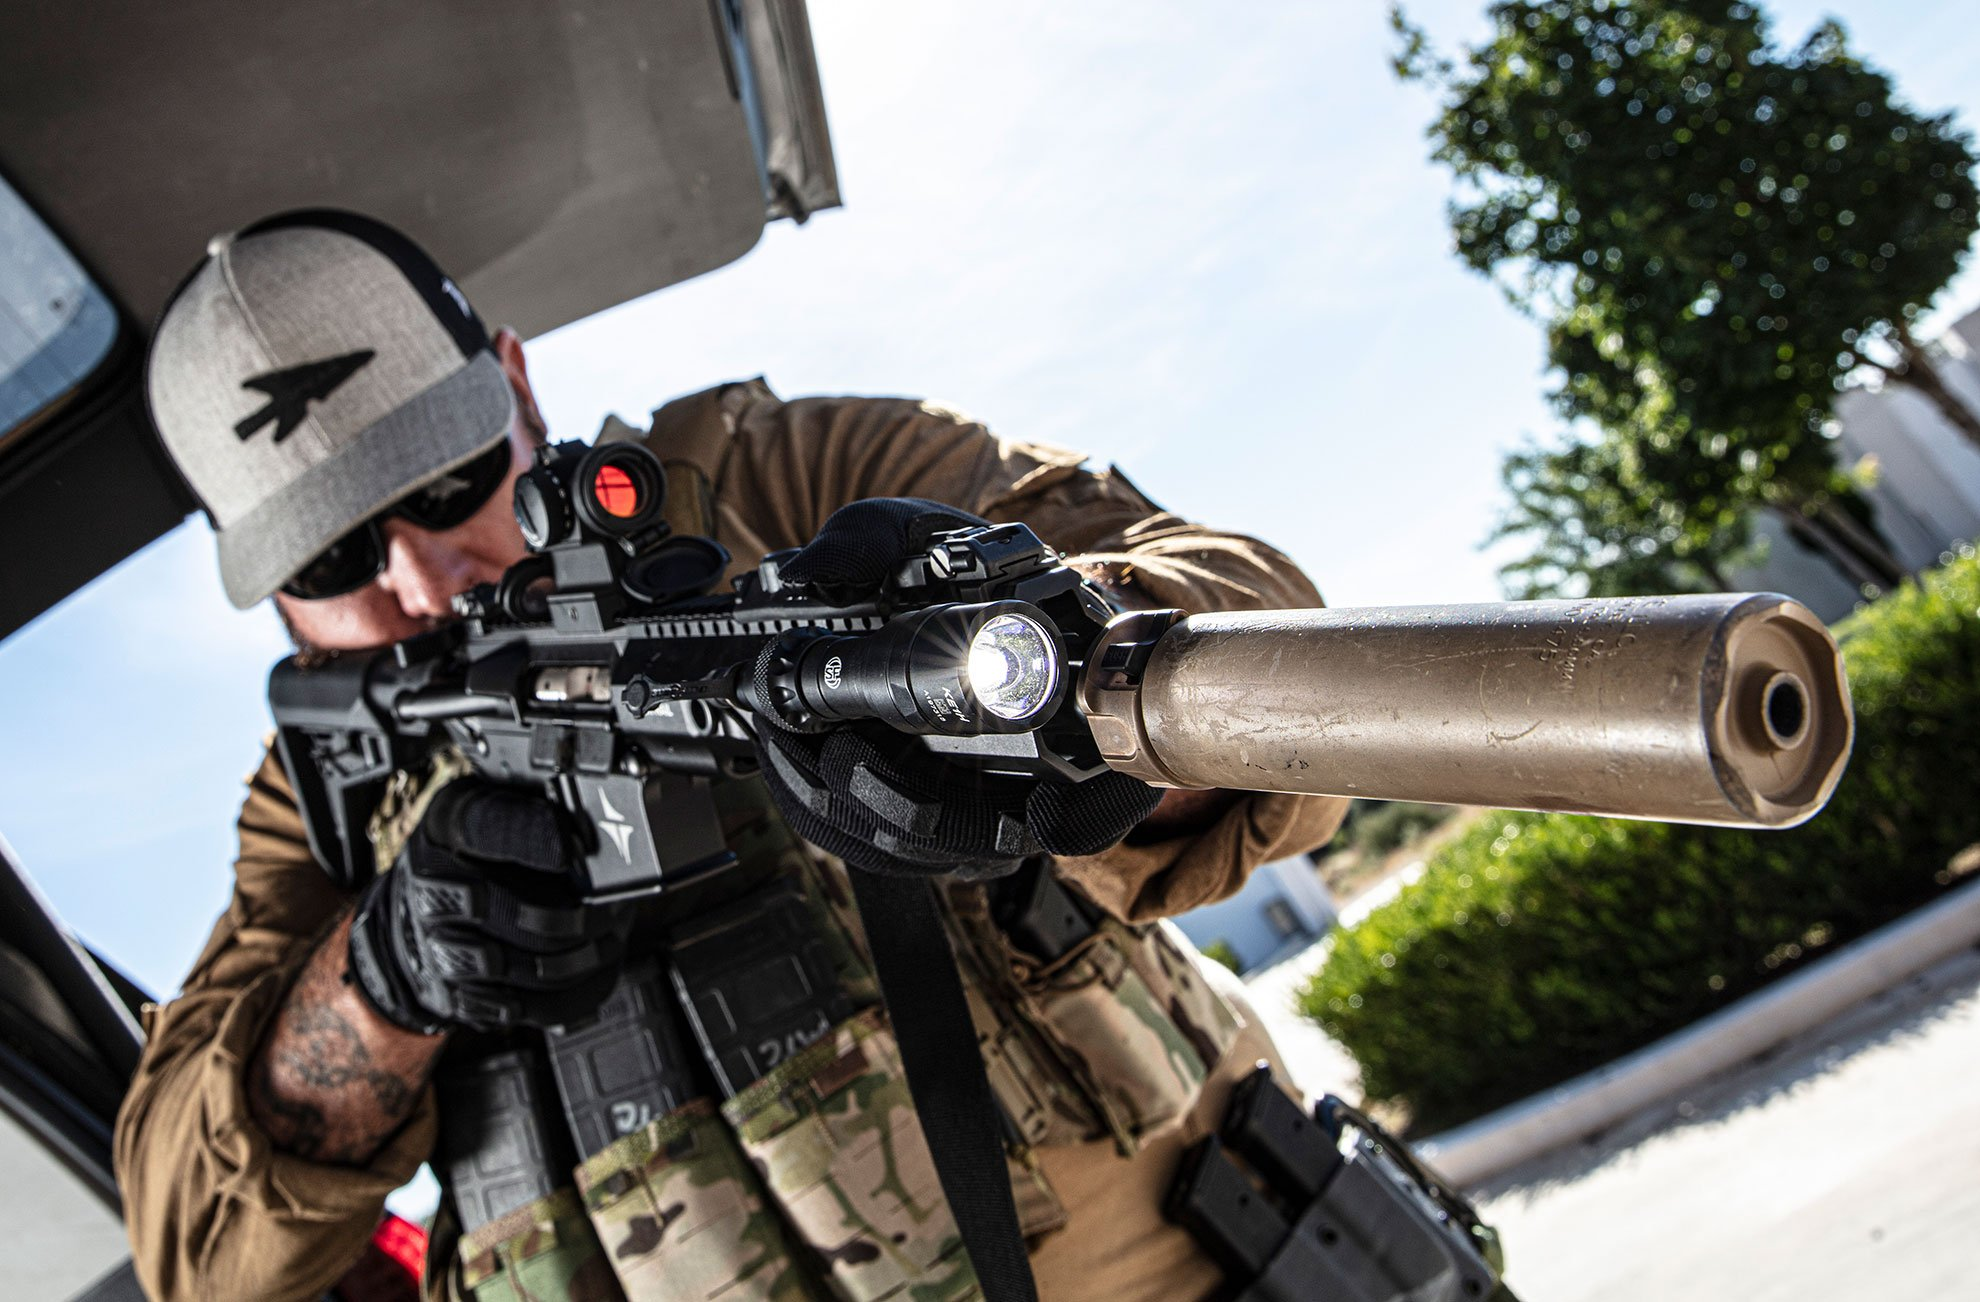 SureFire-equipped operator doing day work